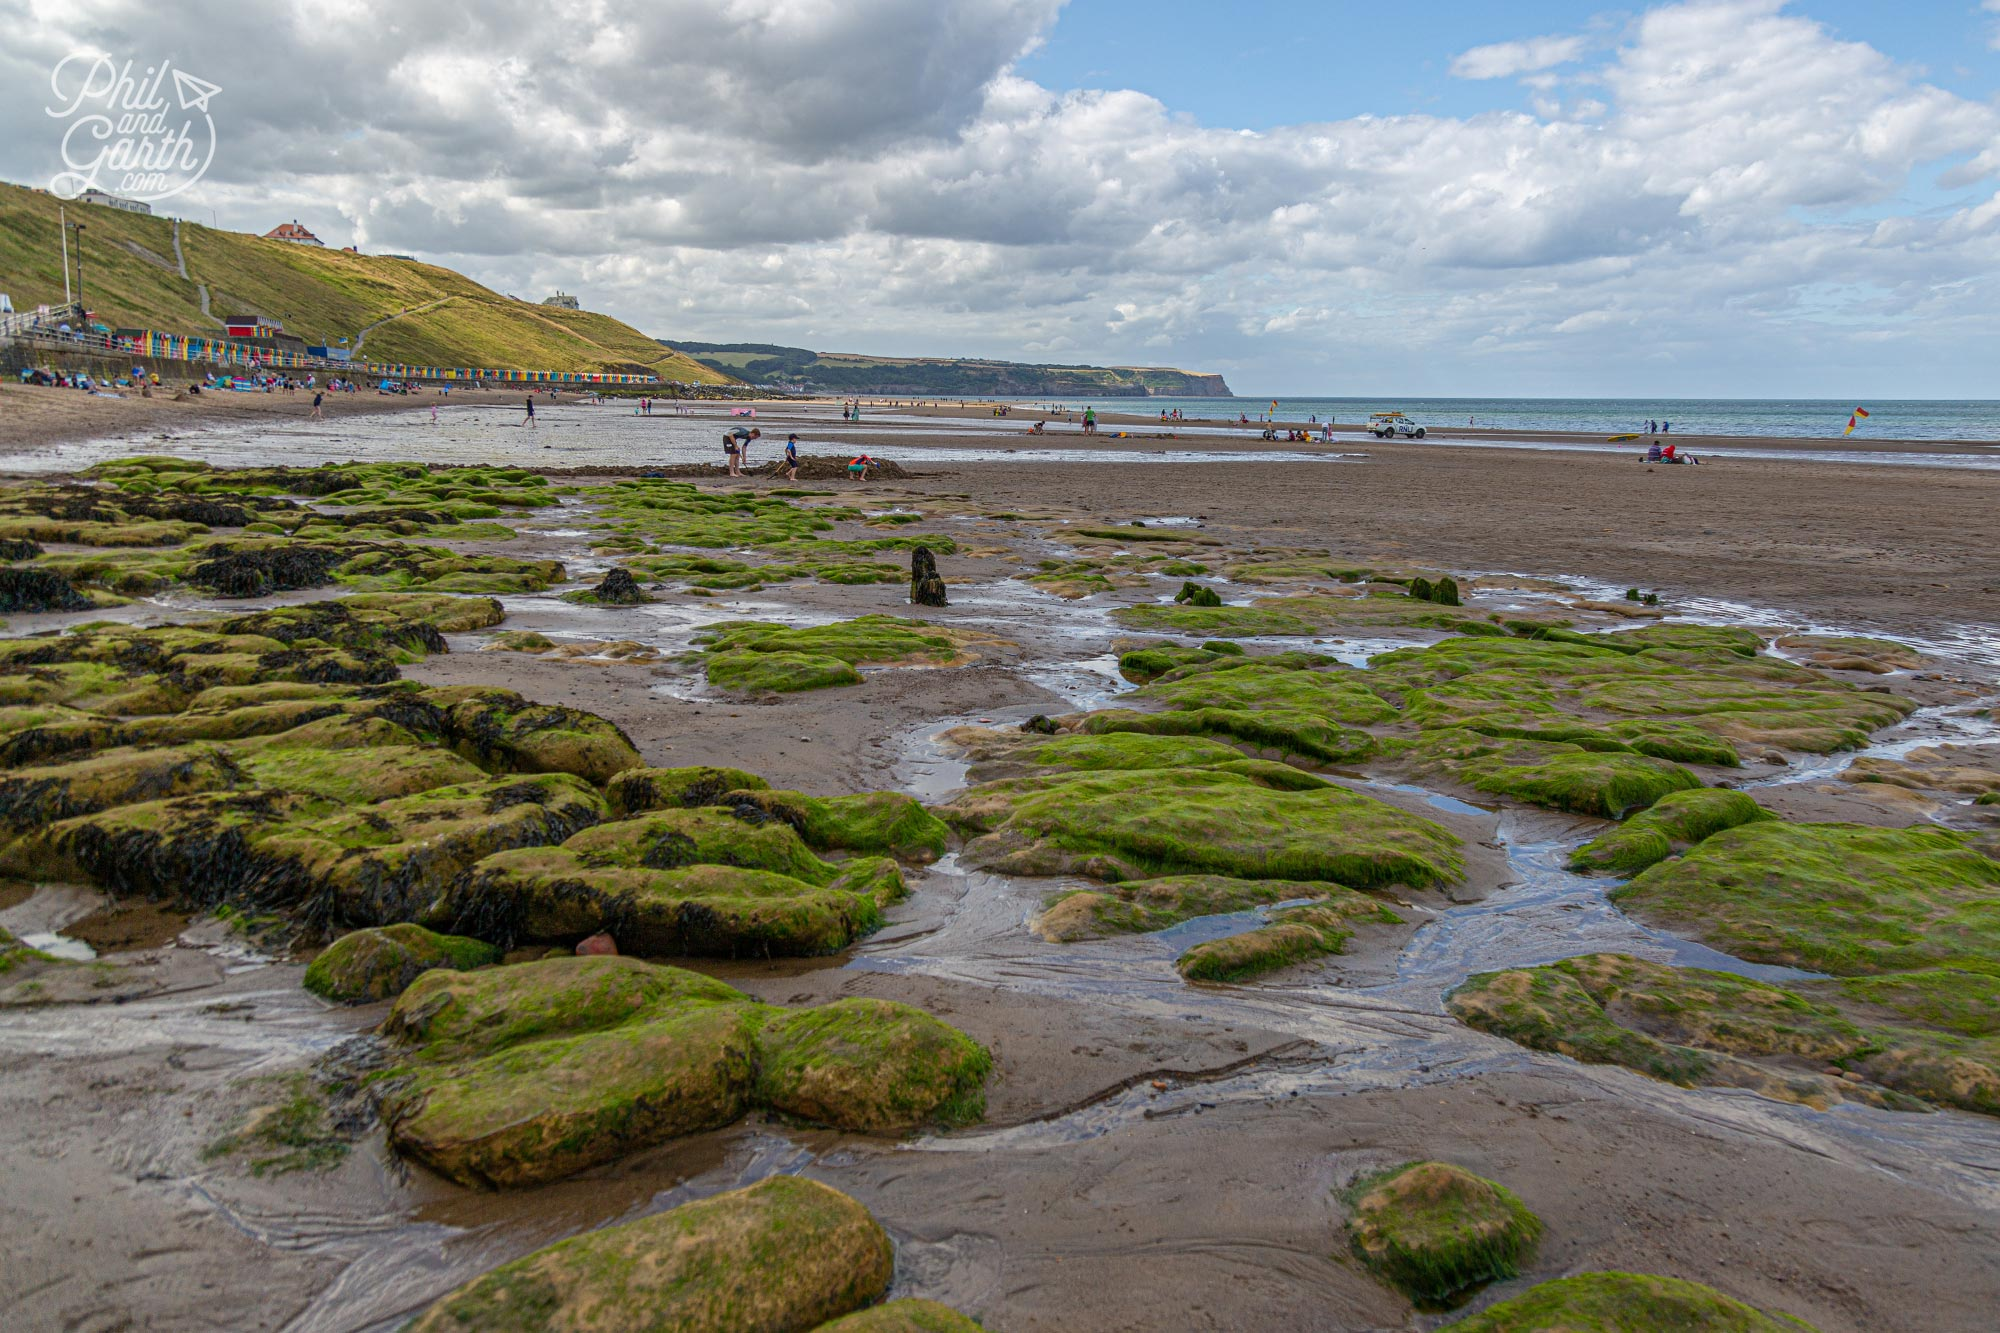 Take a walk from Whitby to neighbouring Sandsend